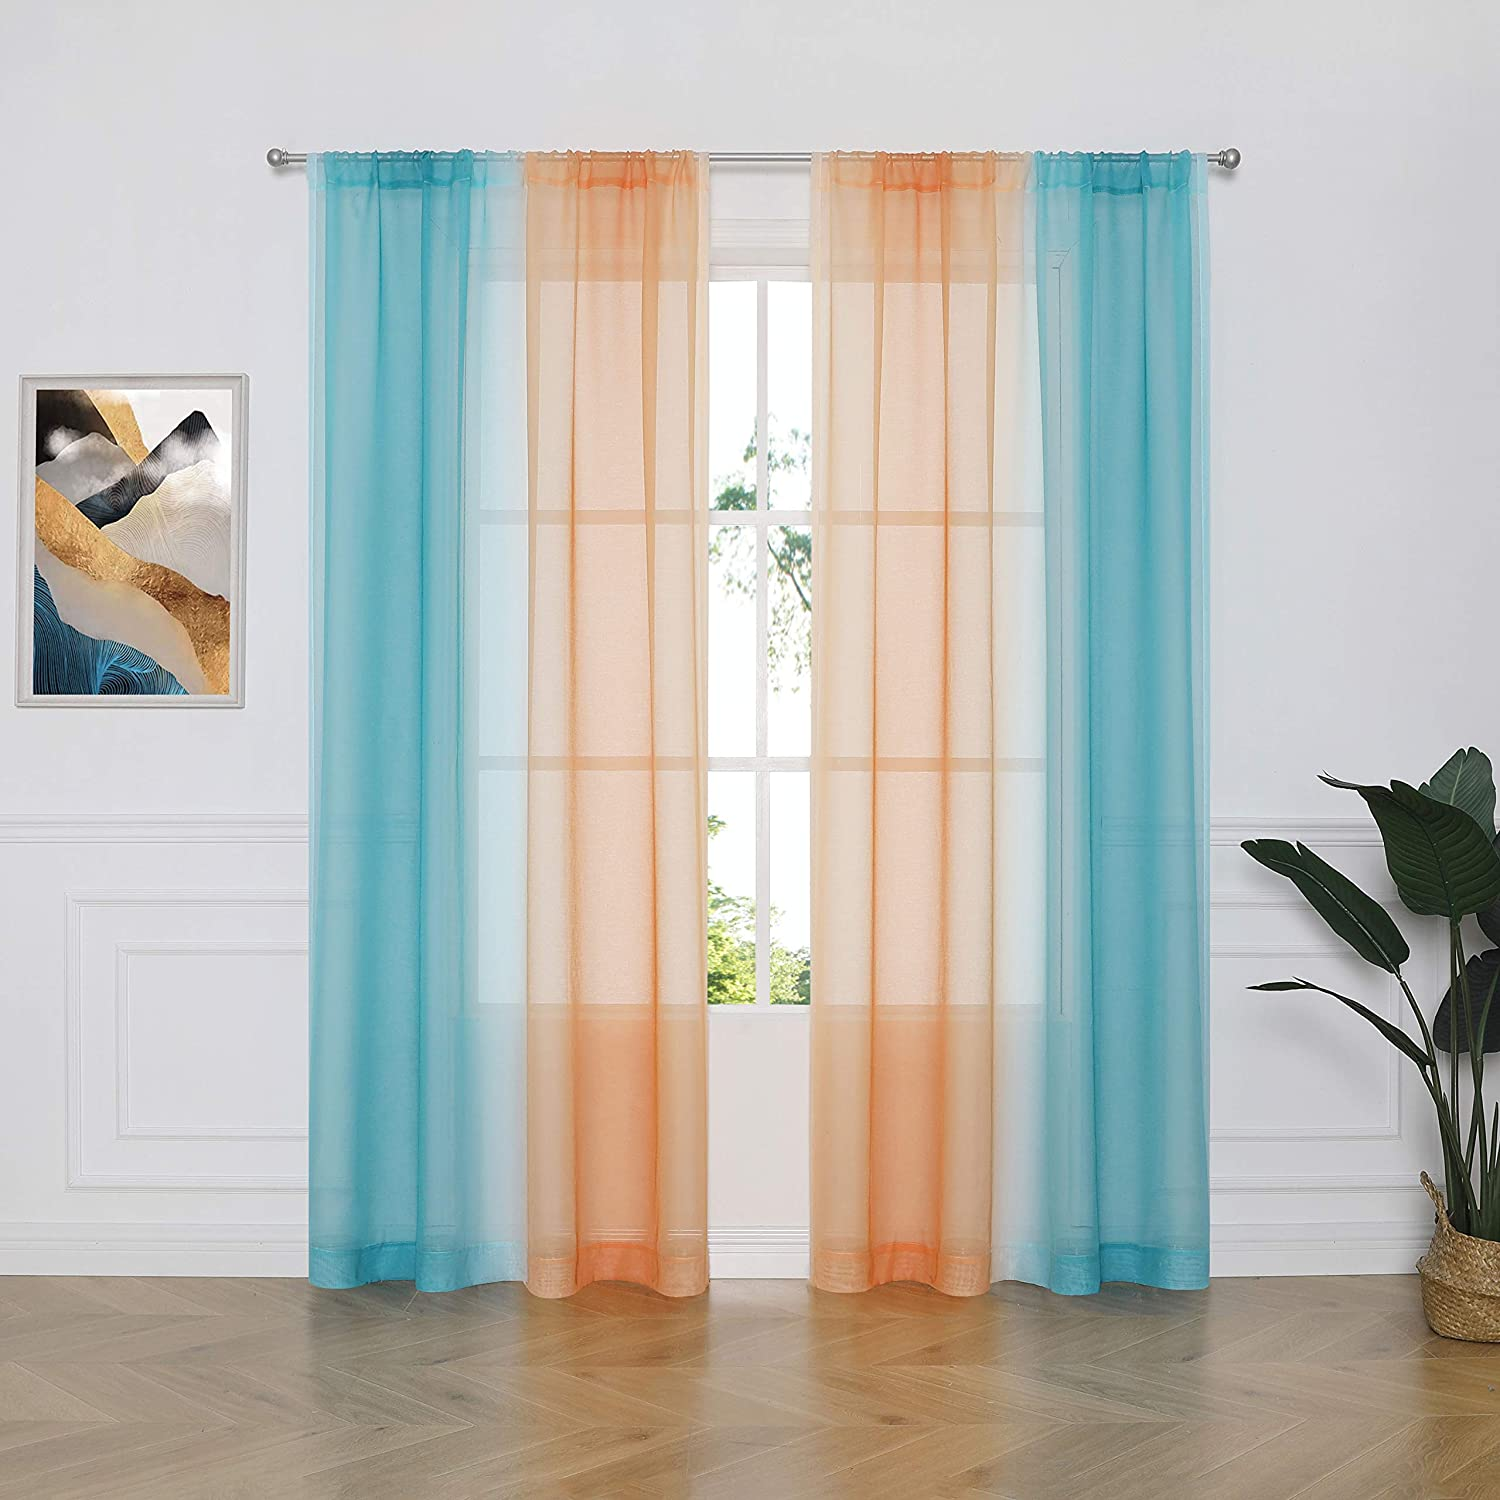 Ombre Sheer Curtain Panel Pairs 95 Inches for Kids, Gradient Voi